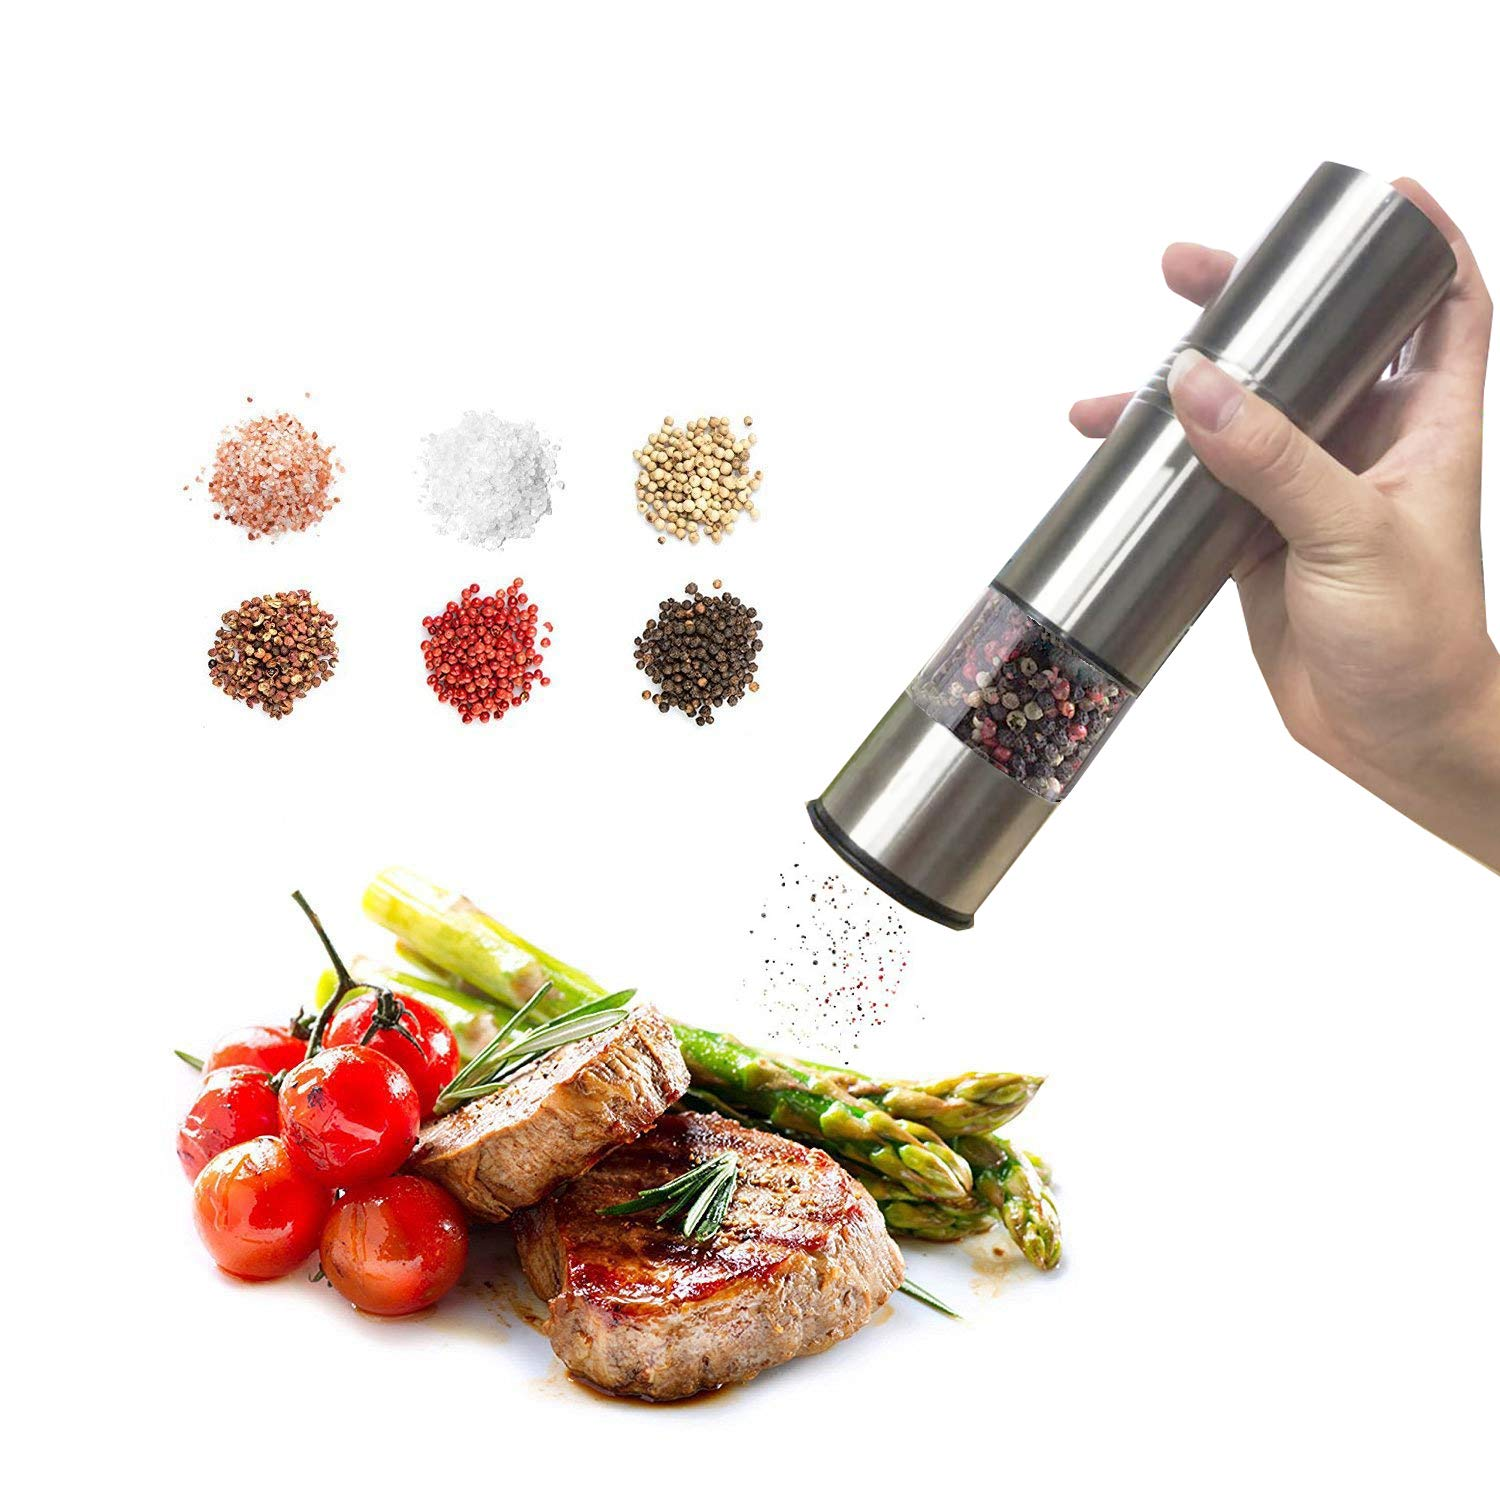 TMKEFFC Electric Salt and Pepper Grinder Set - Battery Operated Stainless Steel Mill with LED Light (Pack of 2 Mills) - Electronic Adjustable Shakers - Ceramic Grinders - Automatic One Handed Operation by TMKEFFC (Image #4)